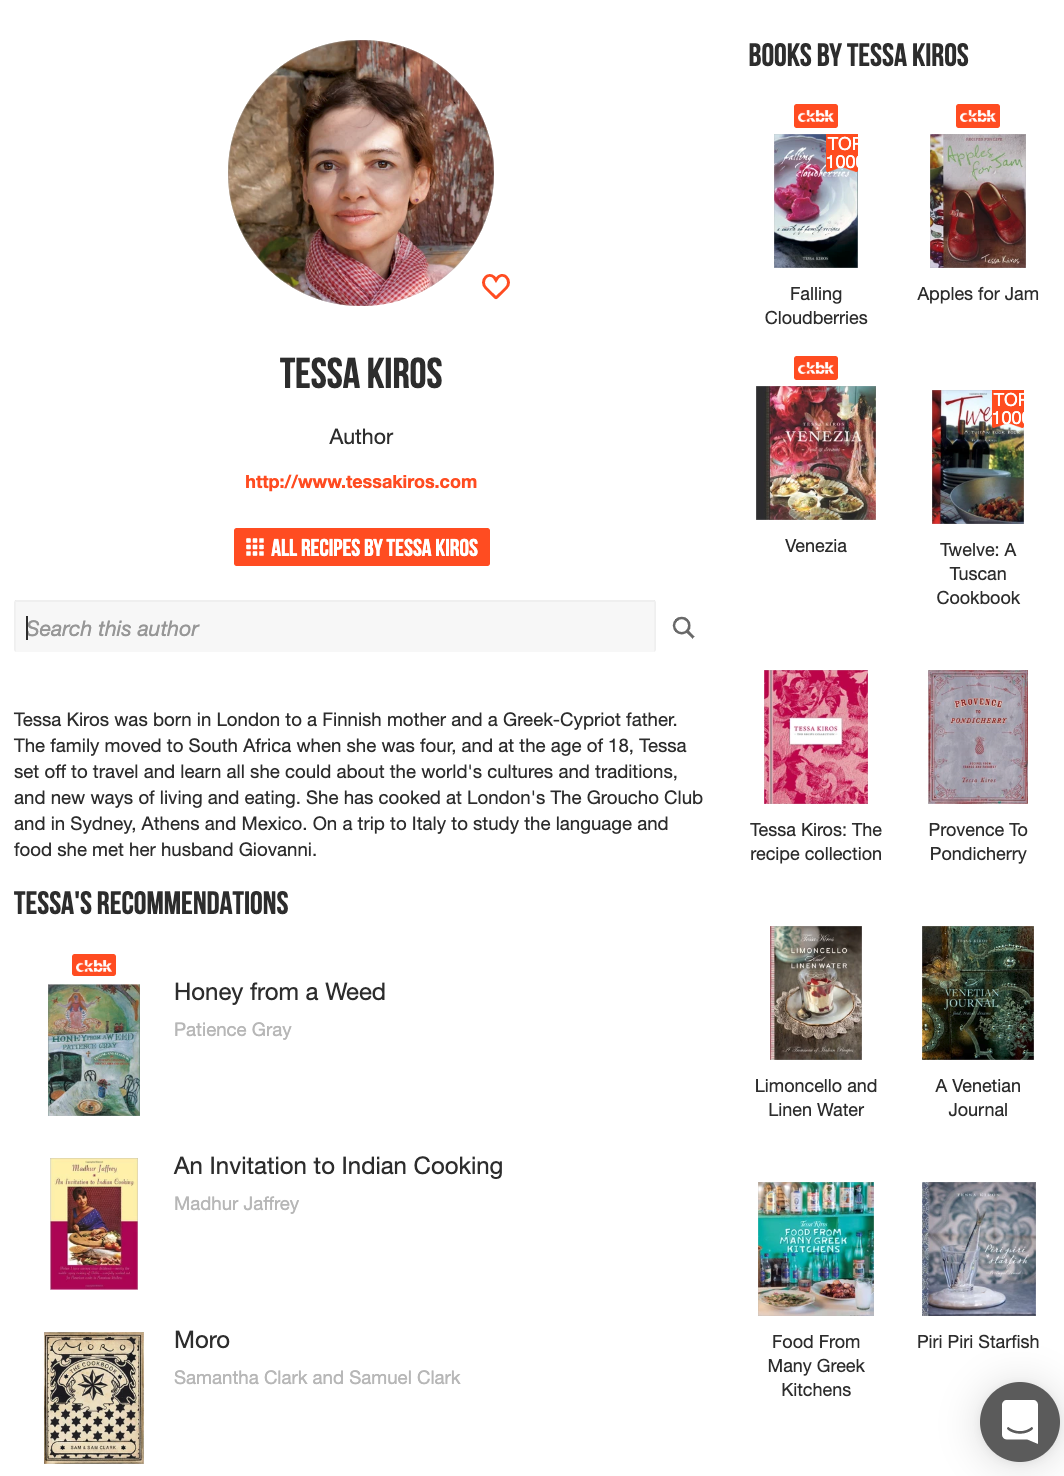 Tessa Kiros' author page with titles she's authored and books she recommends